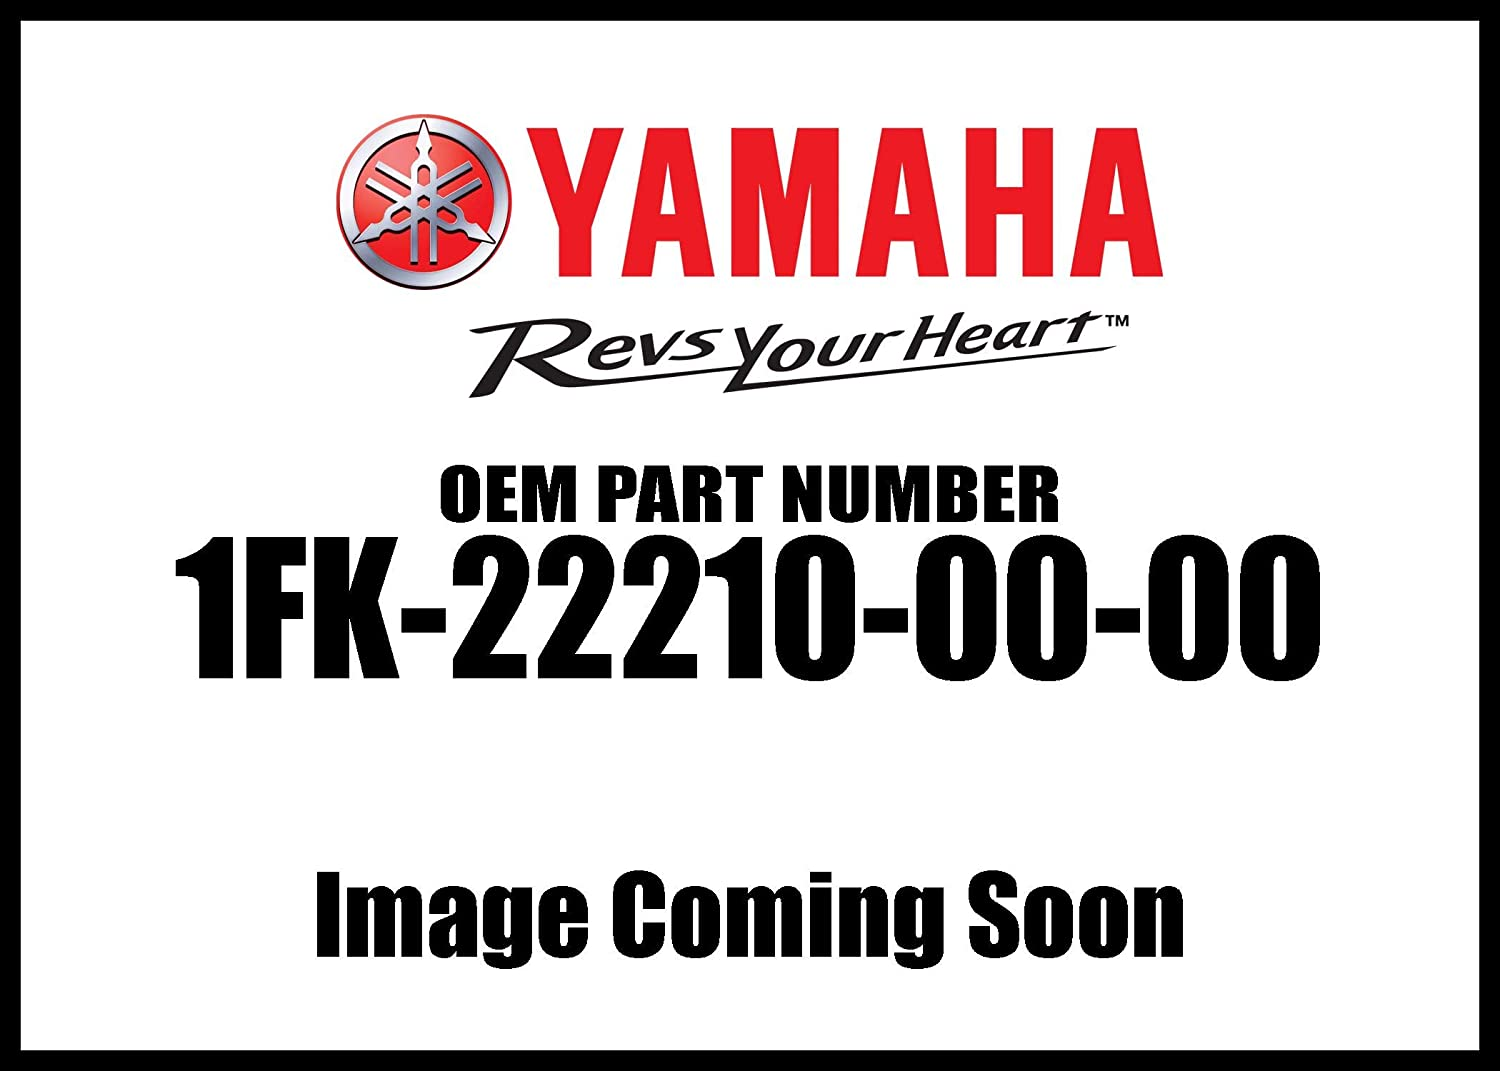 Yamaha New OEM 1FK-22210-00-00 SHK/ABS ASY,Rear 1FK222100000